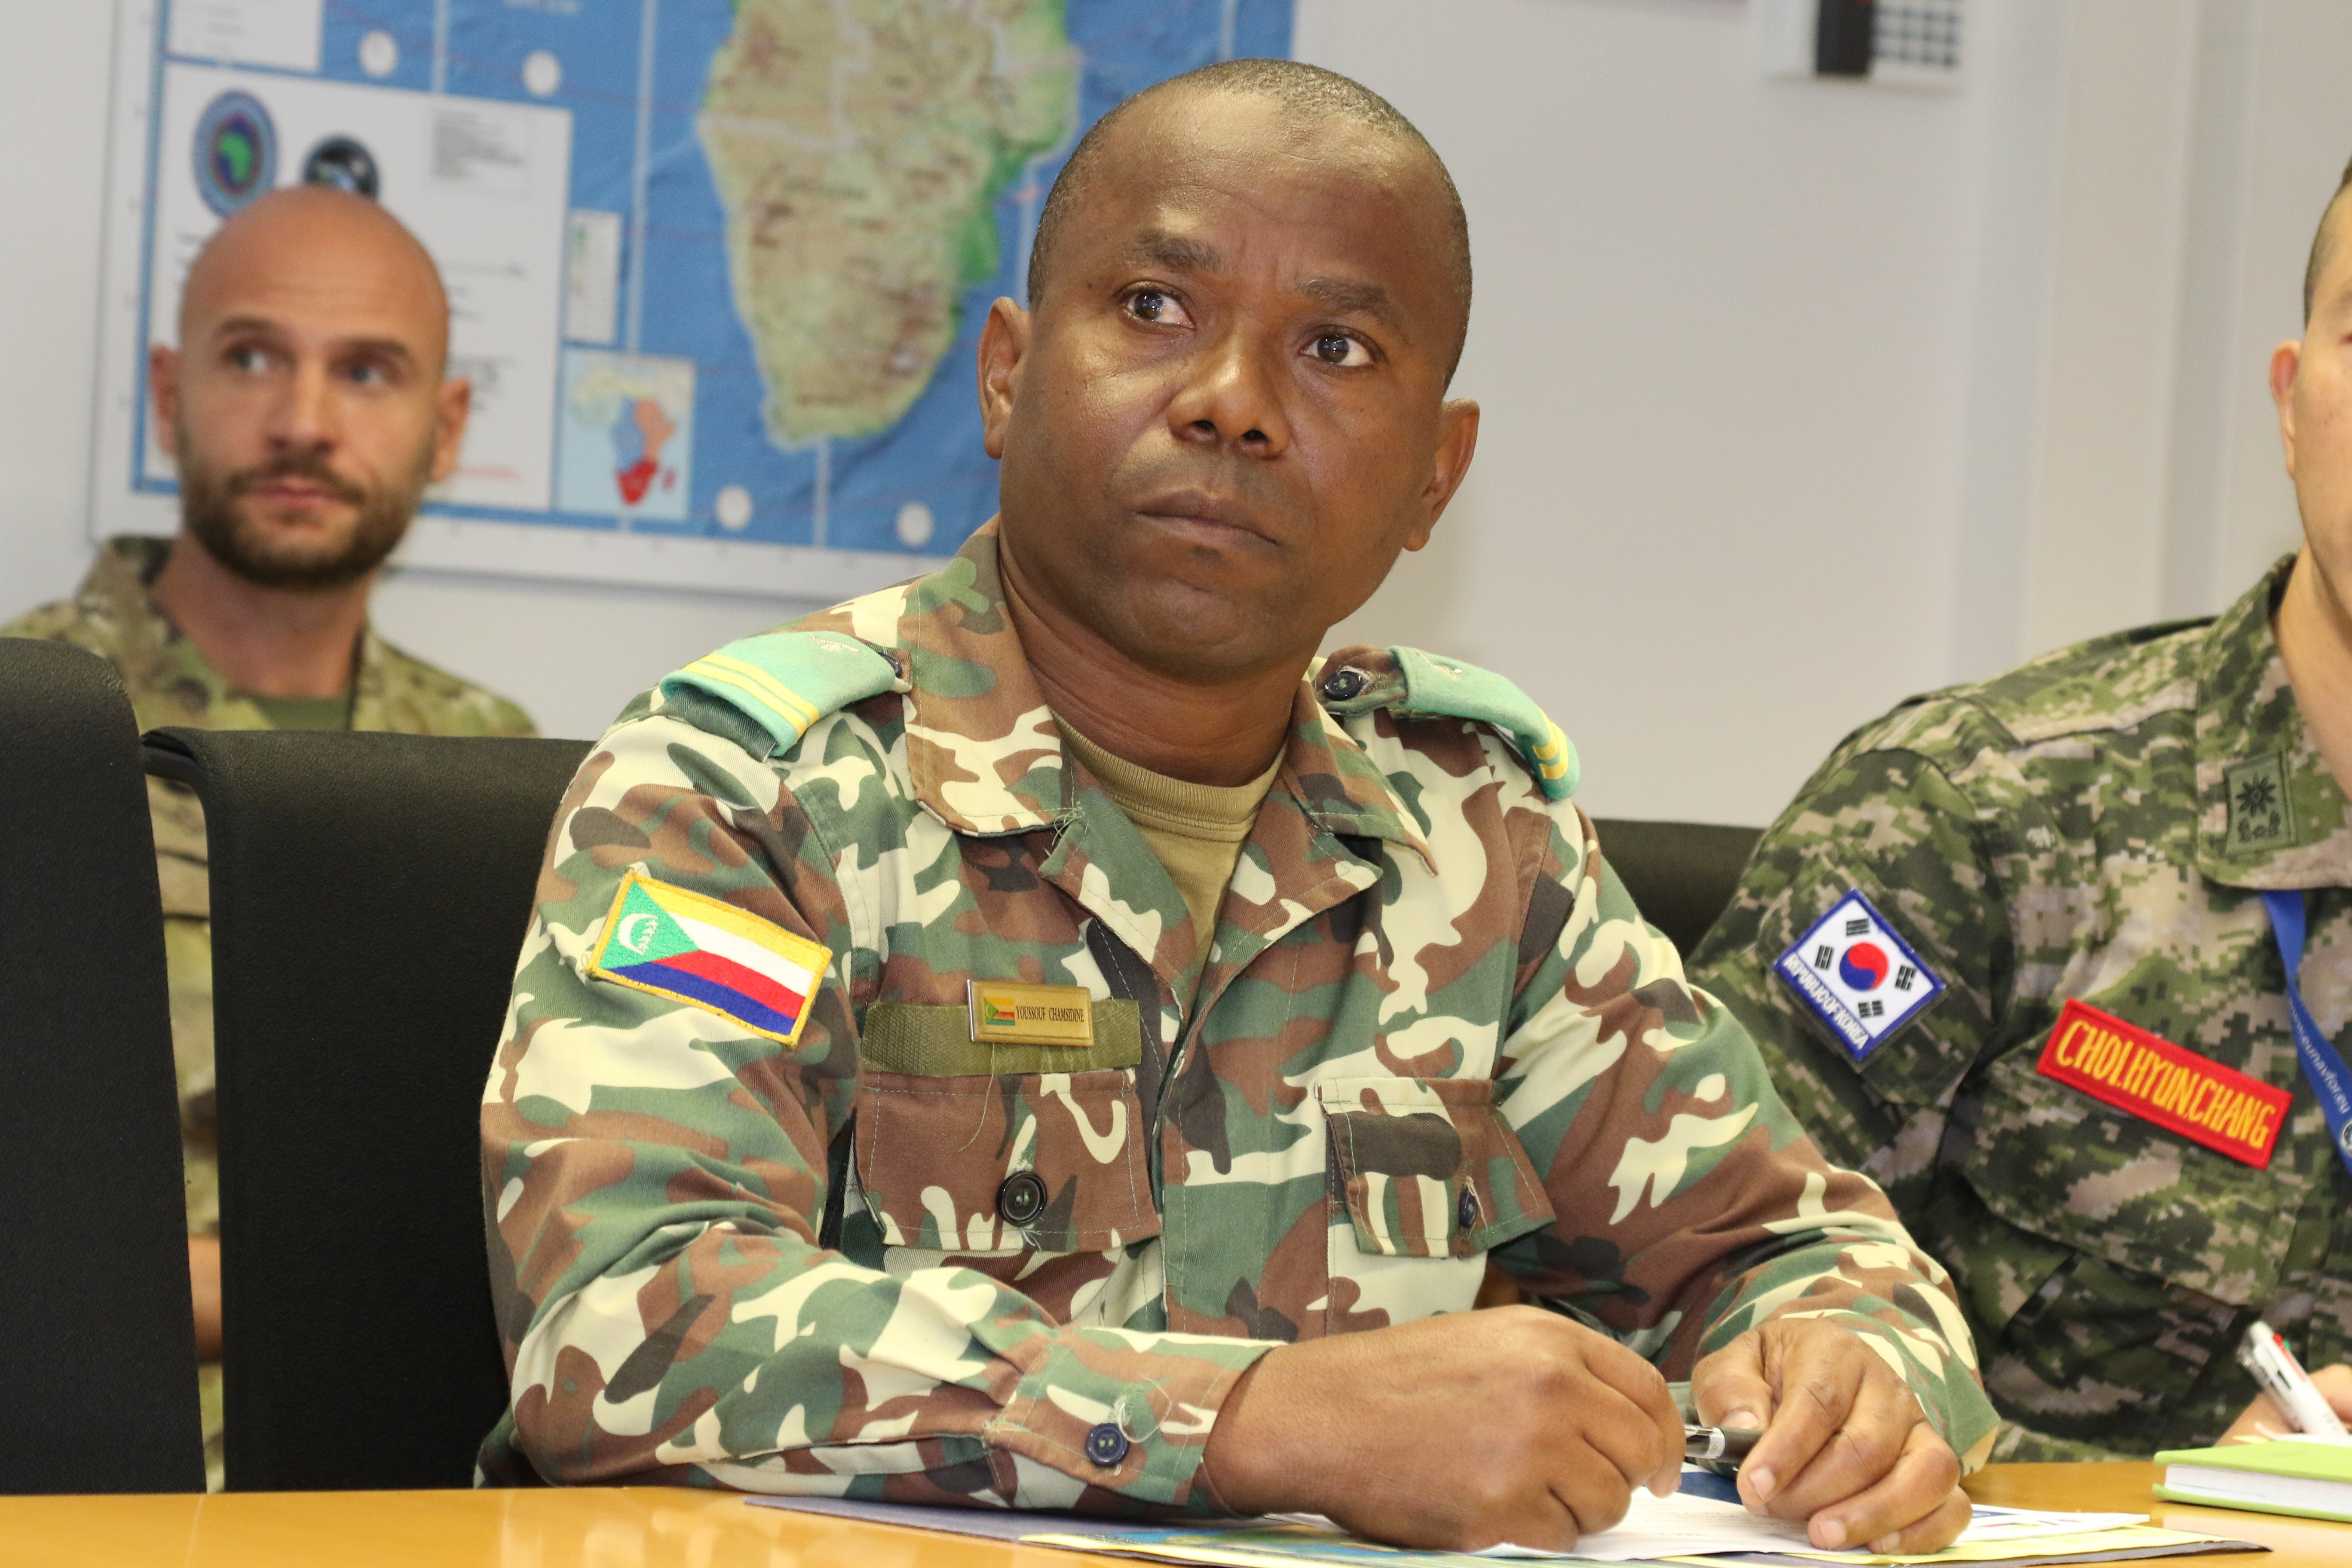 A foreign liaison officer from Comoros listens to briefings during a visit to U.S. Africa Command headquarters Oct. 30, 2018. Foreign liaison officers from Combined Joint Task Force - Horn of Africa visited AFRICOM headquarters to meet with staff and receive briefings.